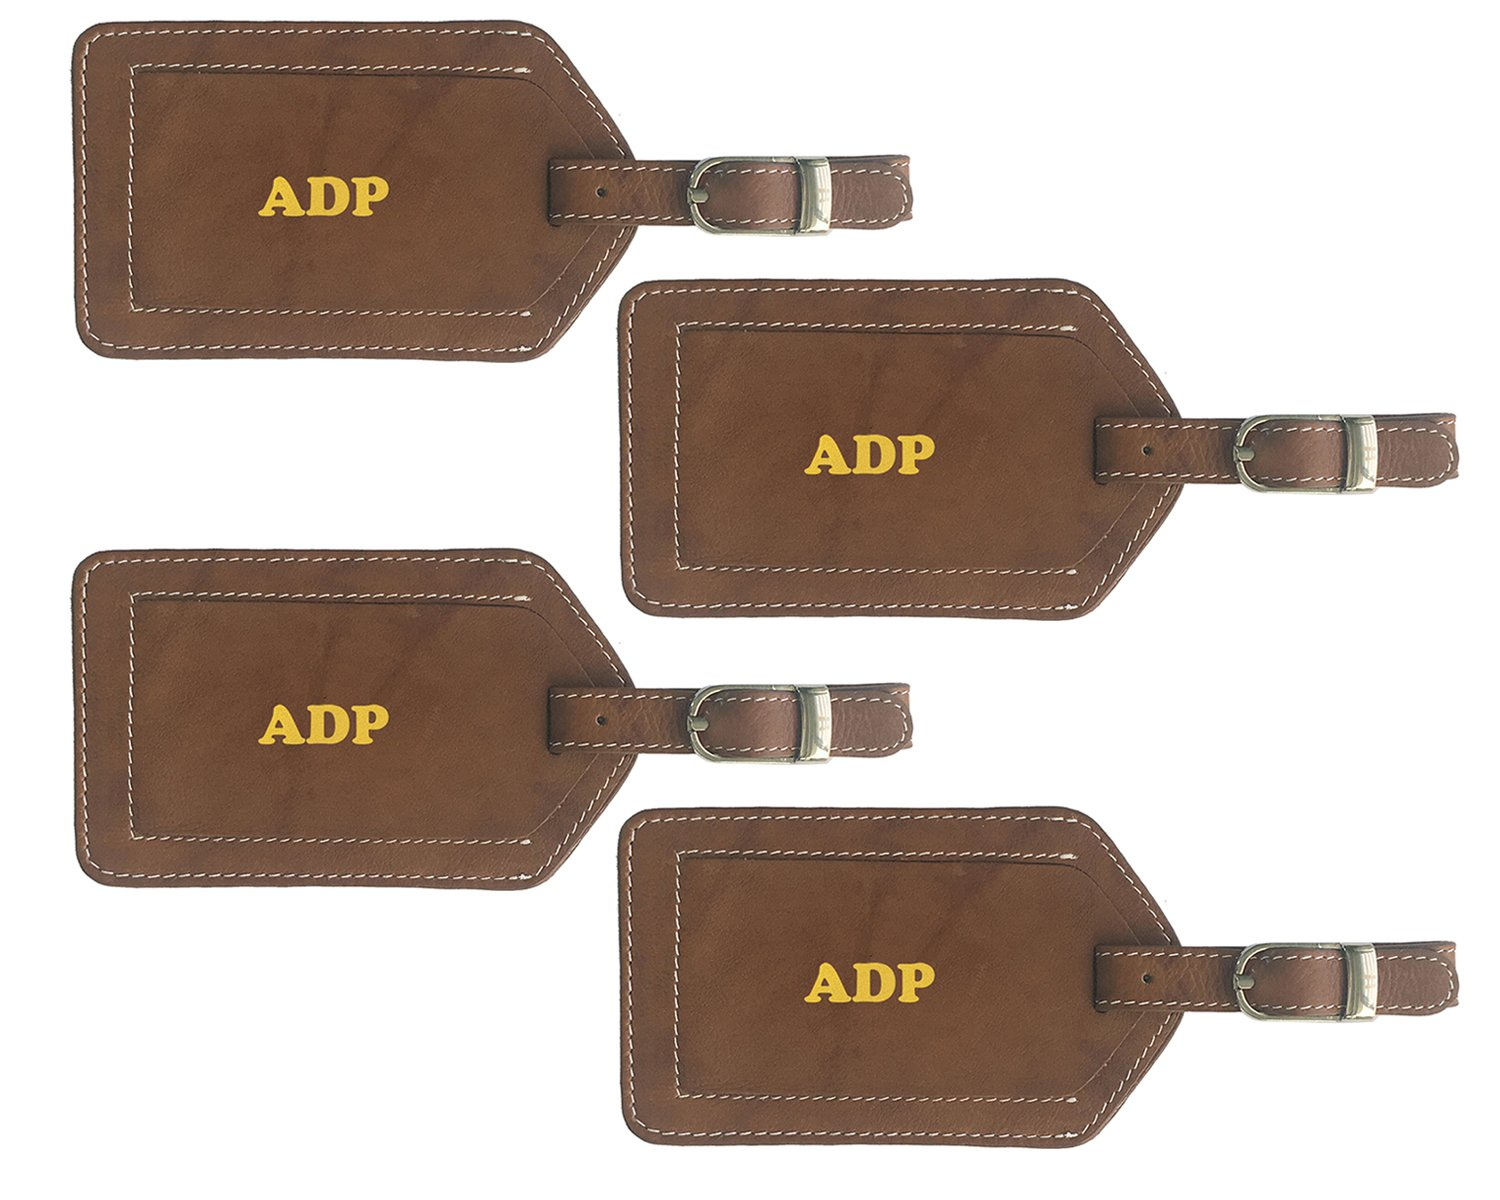 Personalized Monogrammed Antique Saddle Leather Luggage Tags - 4 Pack by 123 Cheap Checks